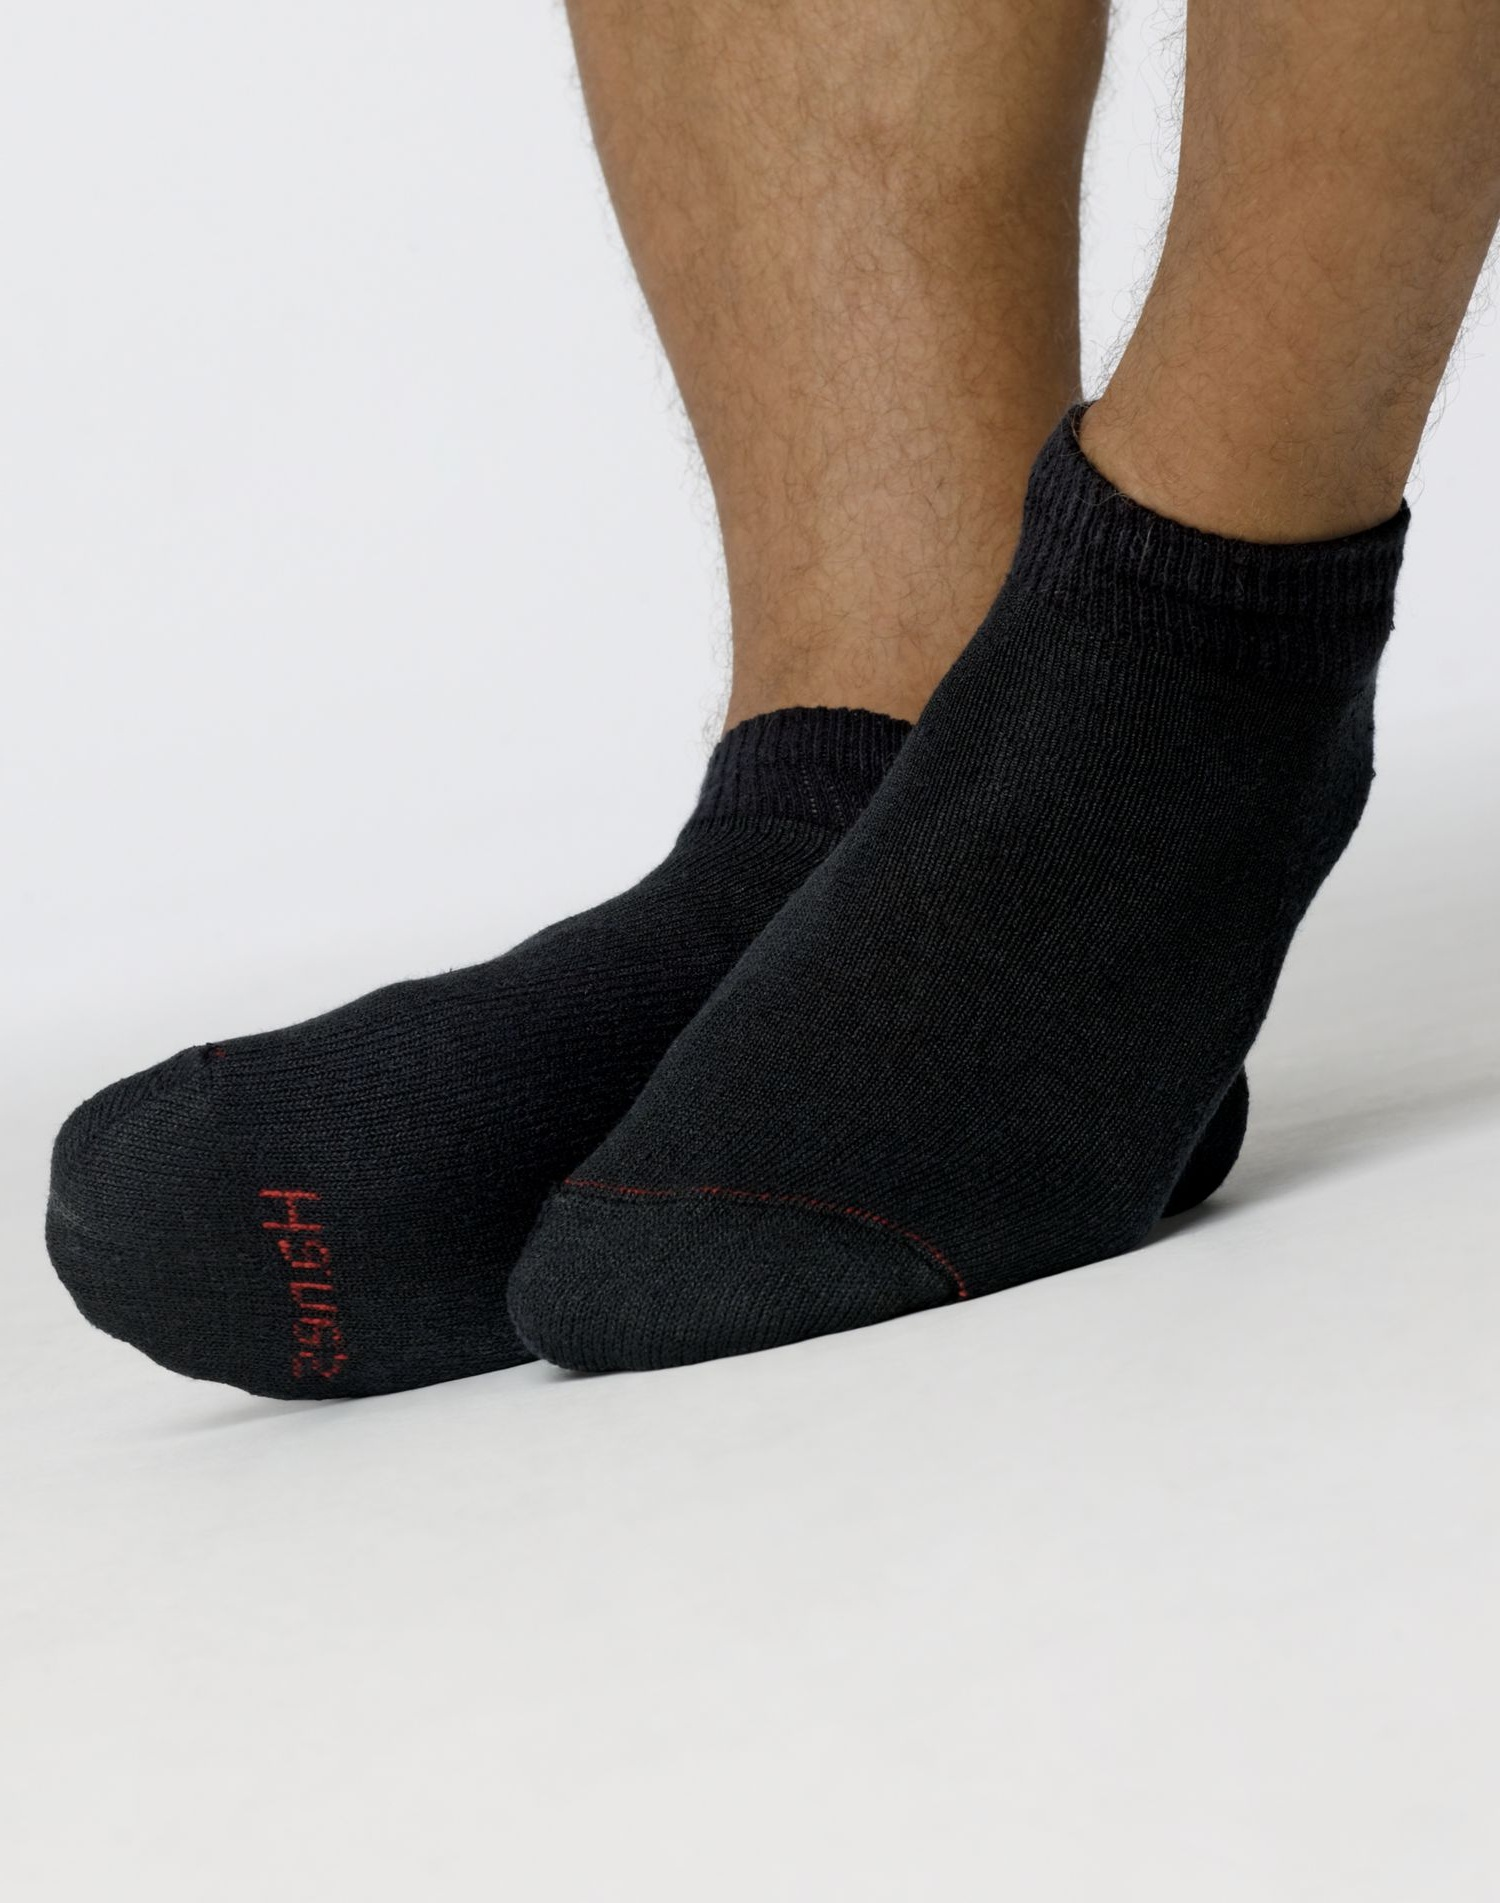 Get this Hanes Men's Crew Super Value Socks 20pk deal for $10 at Target. This deal was added on 11/20/ along with other Target coupons, promo codes.